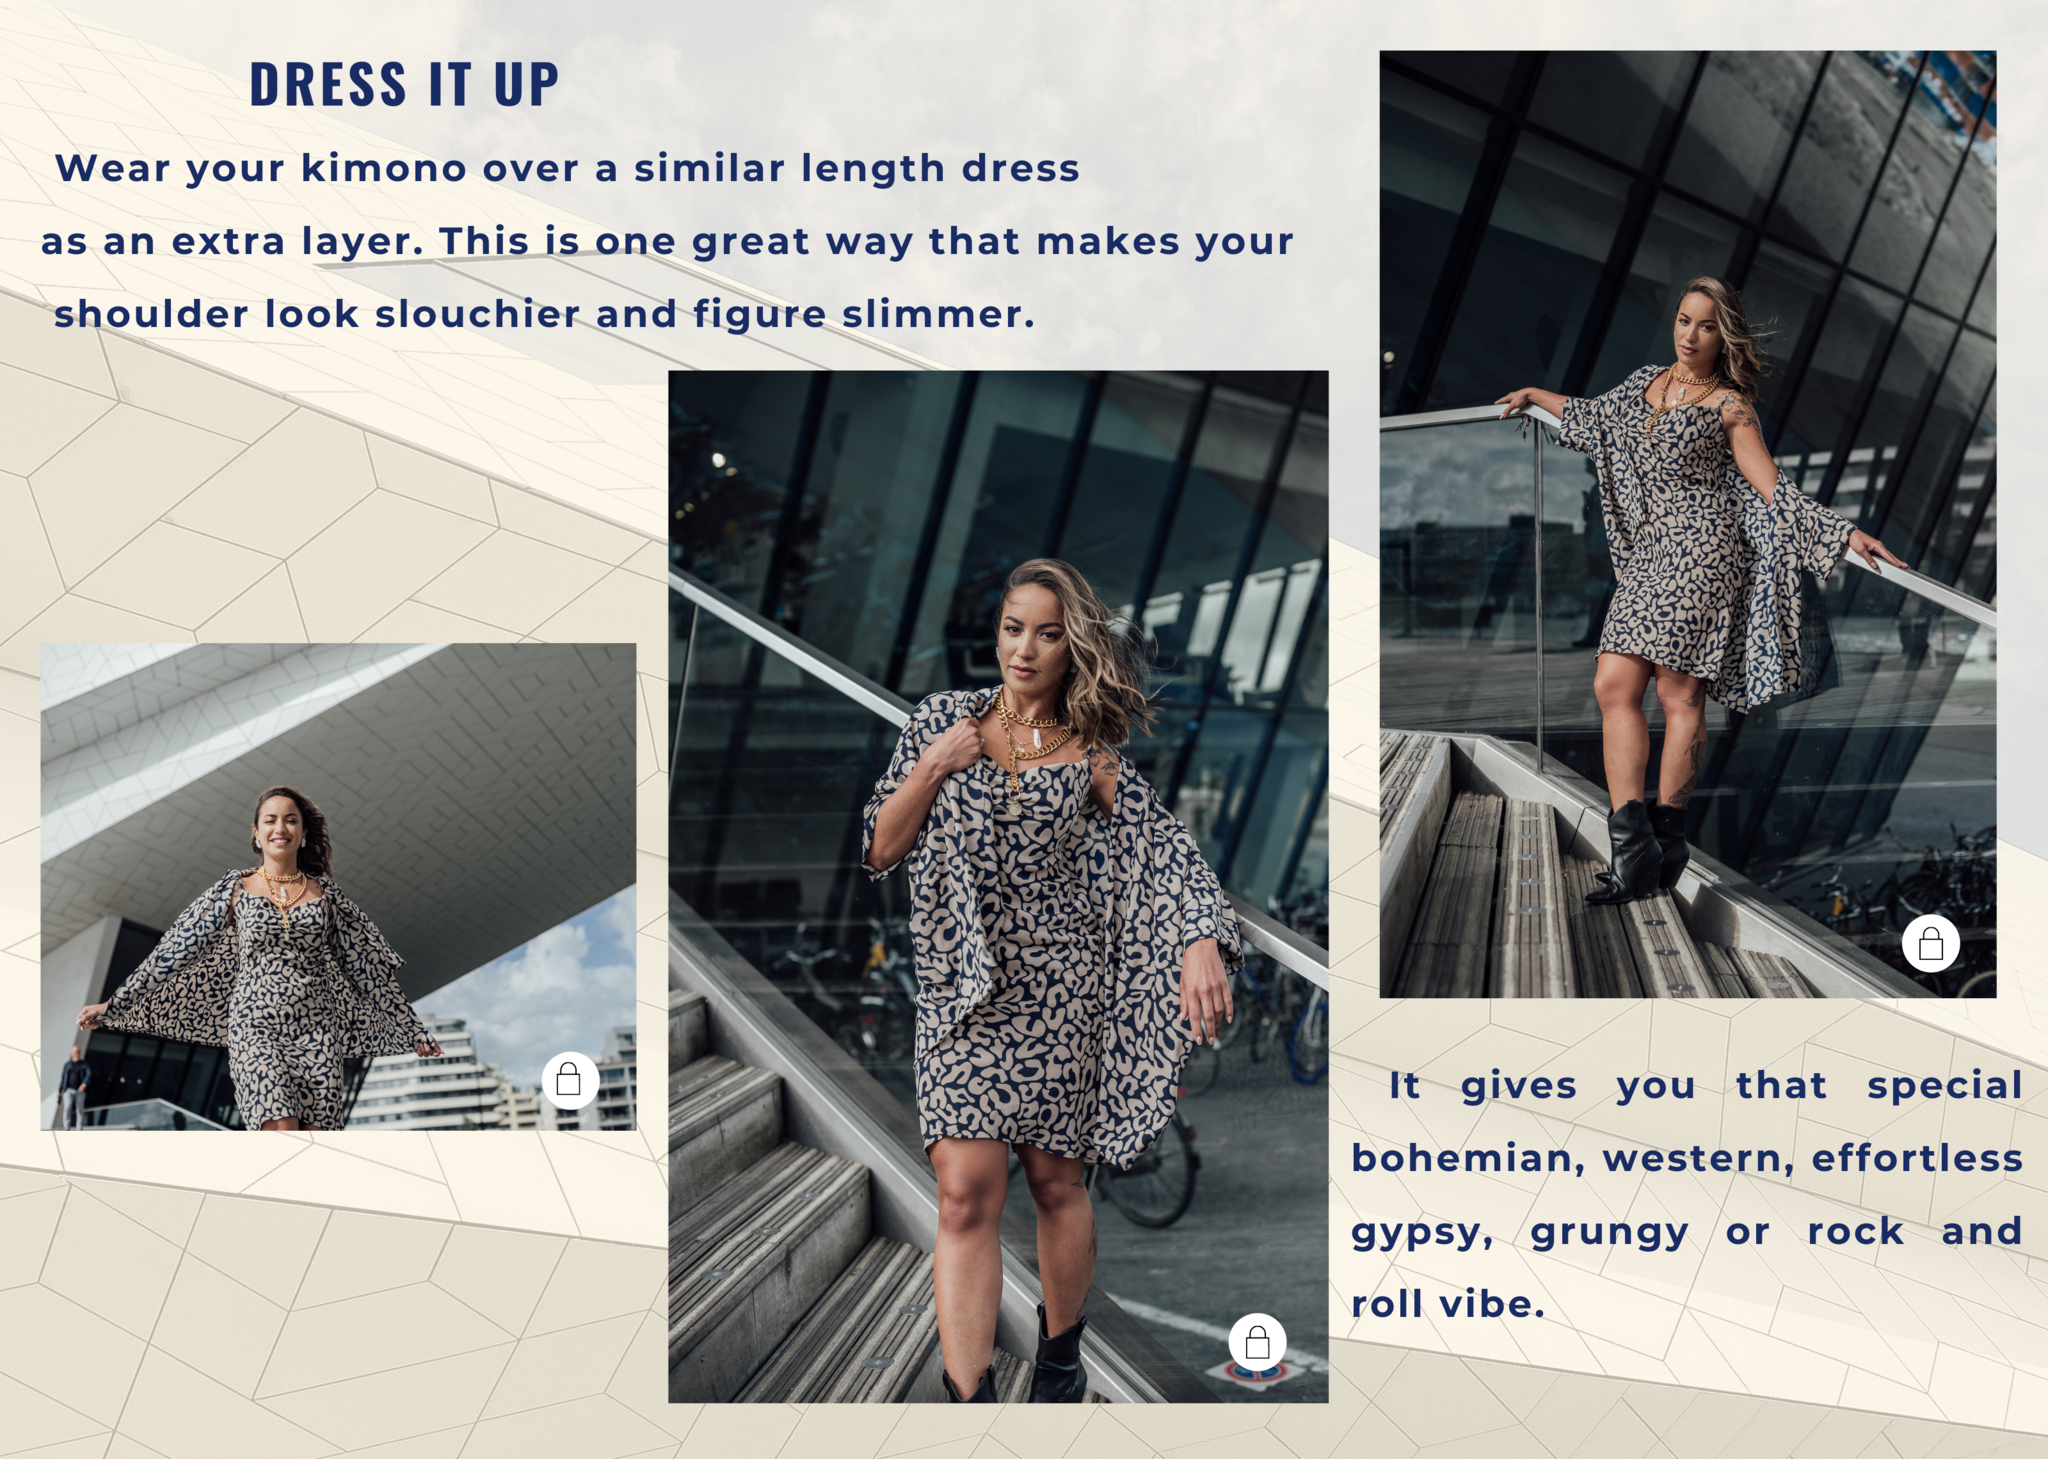 Wear your kimono over a similar length dress  as an extra layer. This is one great way that makes your  shoulder look slouchier and figure slimmer.